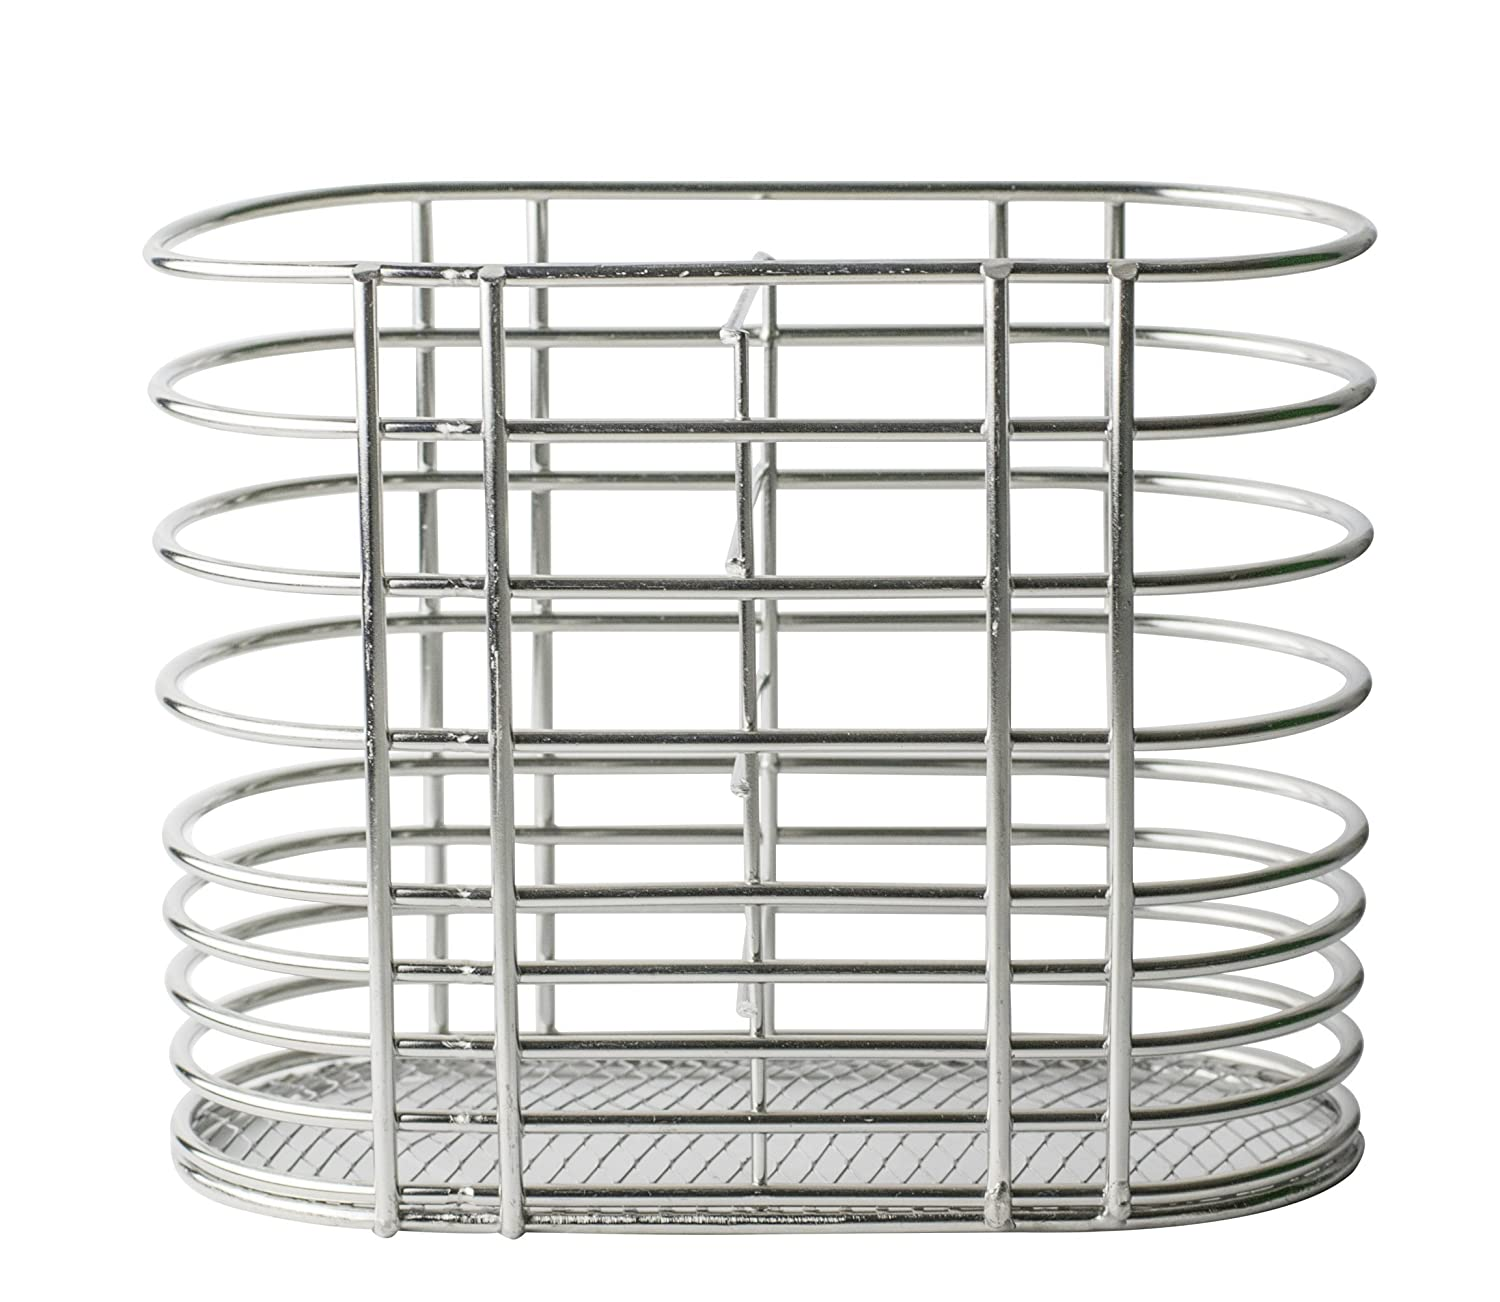 Chopsticks and Straw Holder Basket for Dishwashers - Stainless Steel. Holds chopsticks, straws, cutlery, utensils without falling through